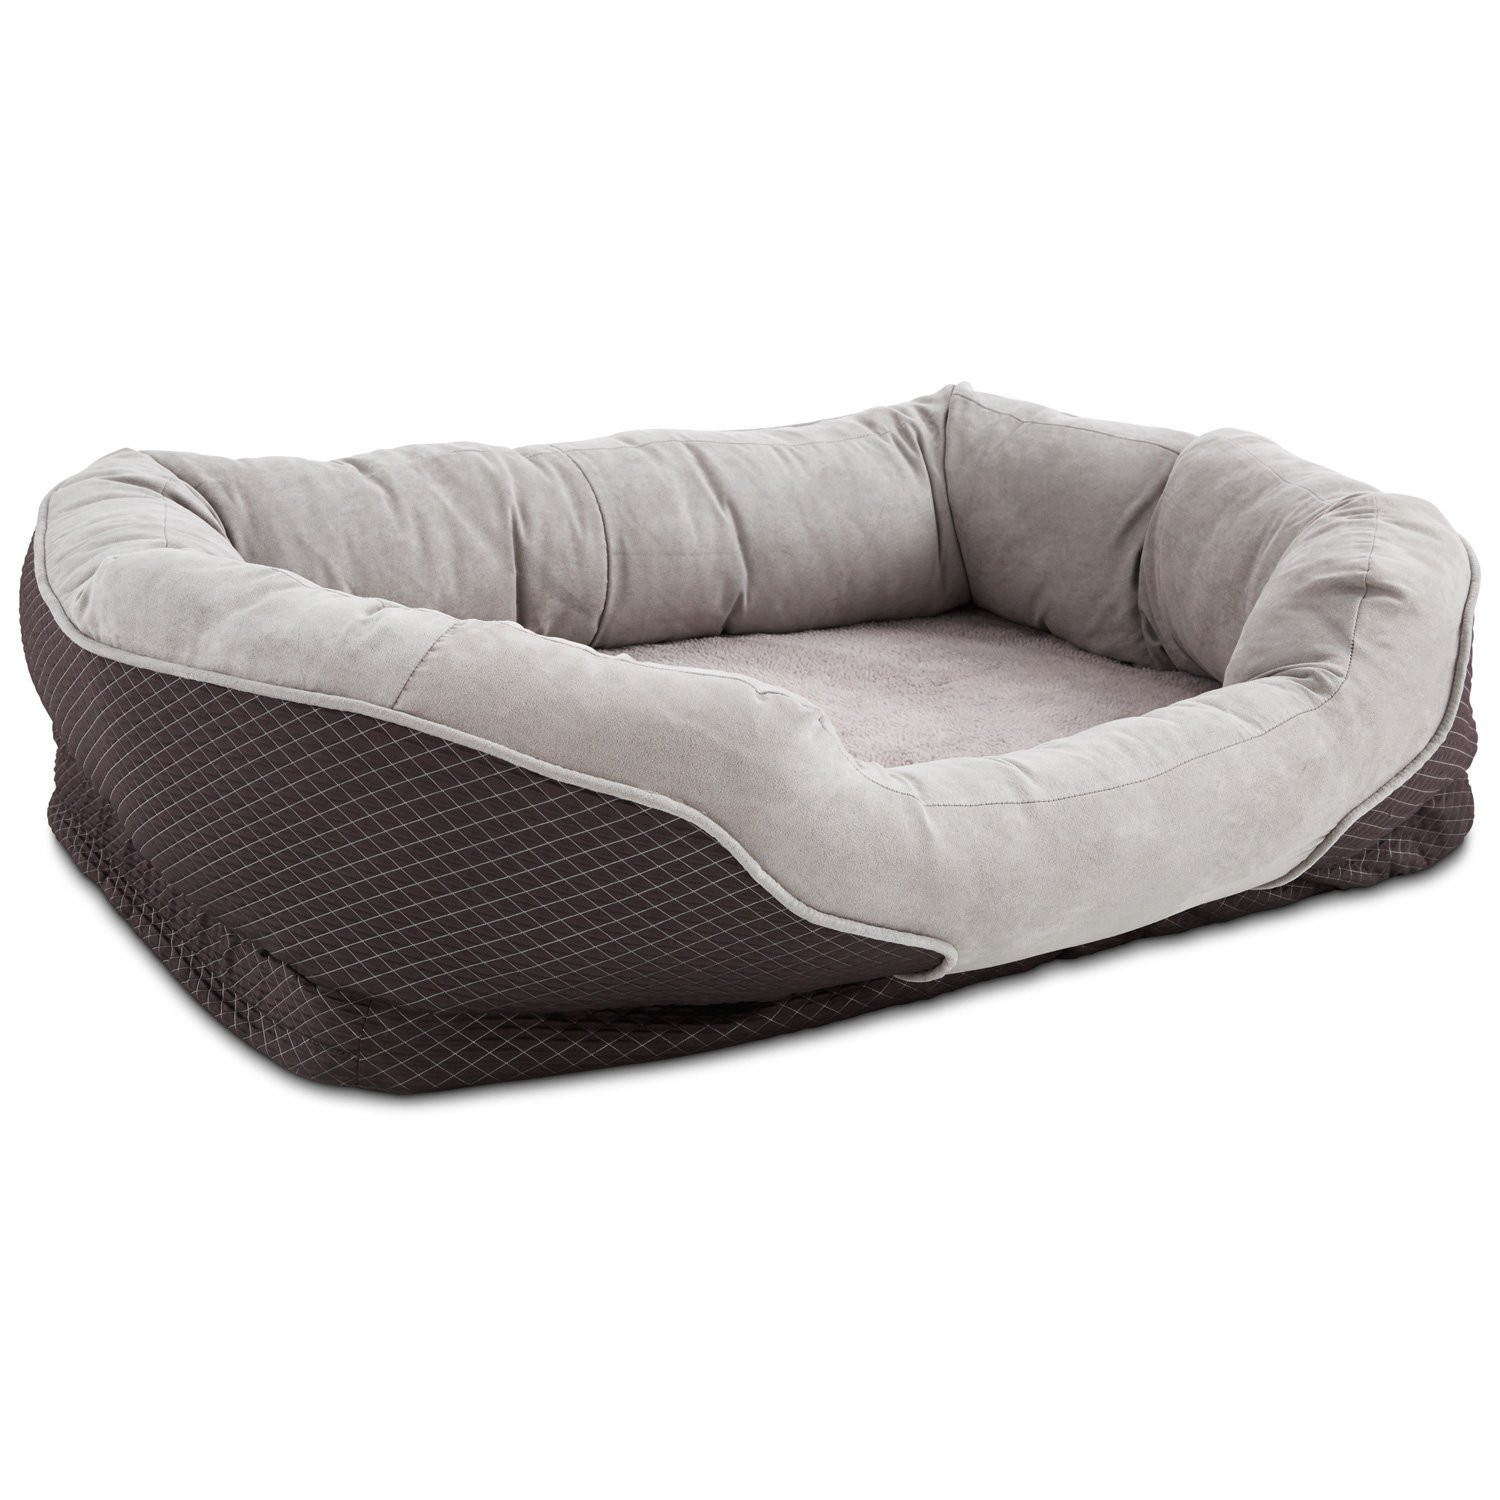 Orthopedic Peaceful Nester Gray Dog Bed | Petco